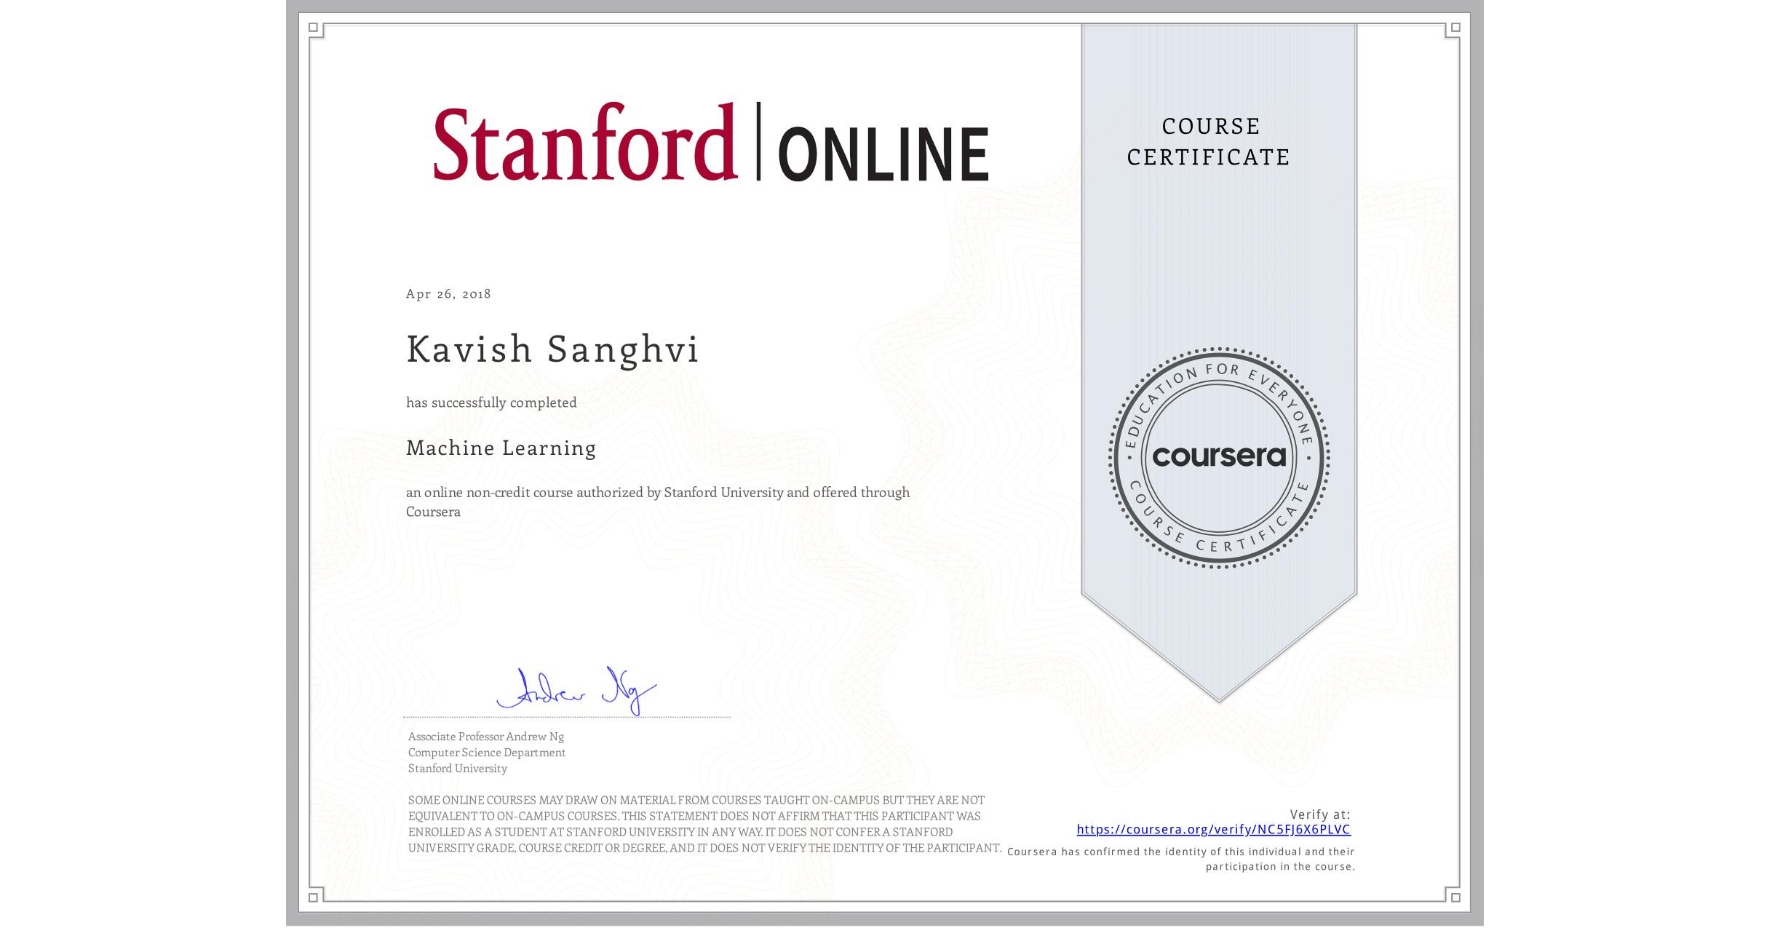 View certificate for Kavish Sanghvi, Machine Learning, an online non-credit course authorized by Stanford University and offered through Coursera